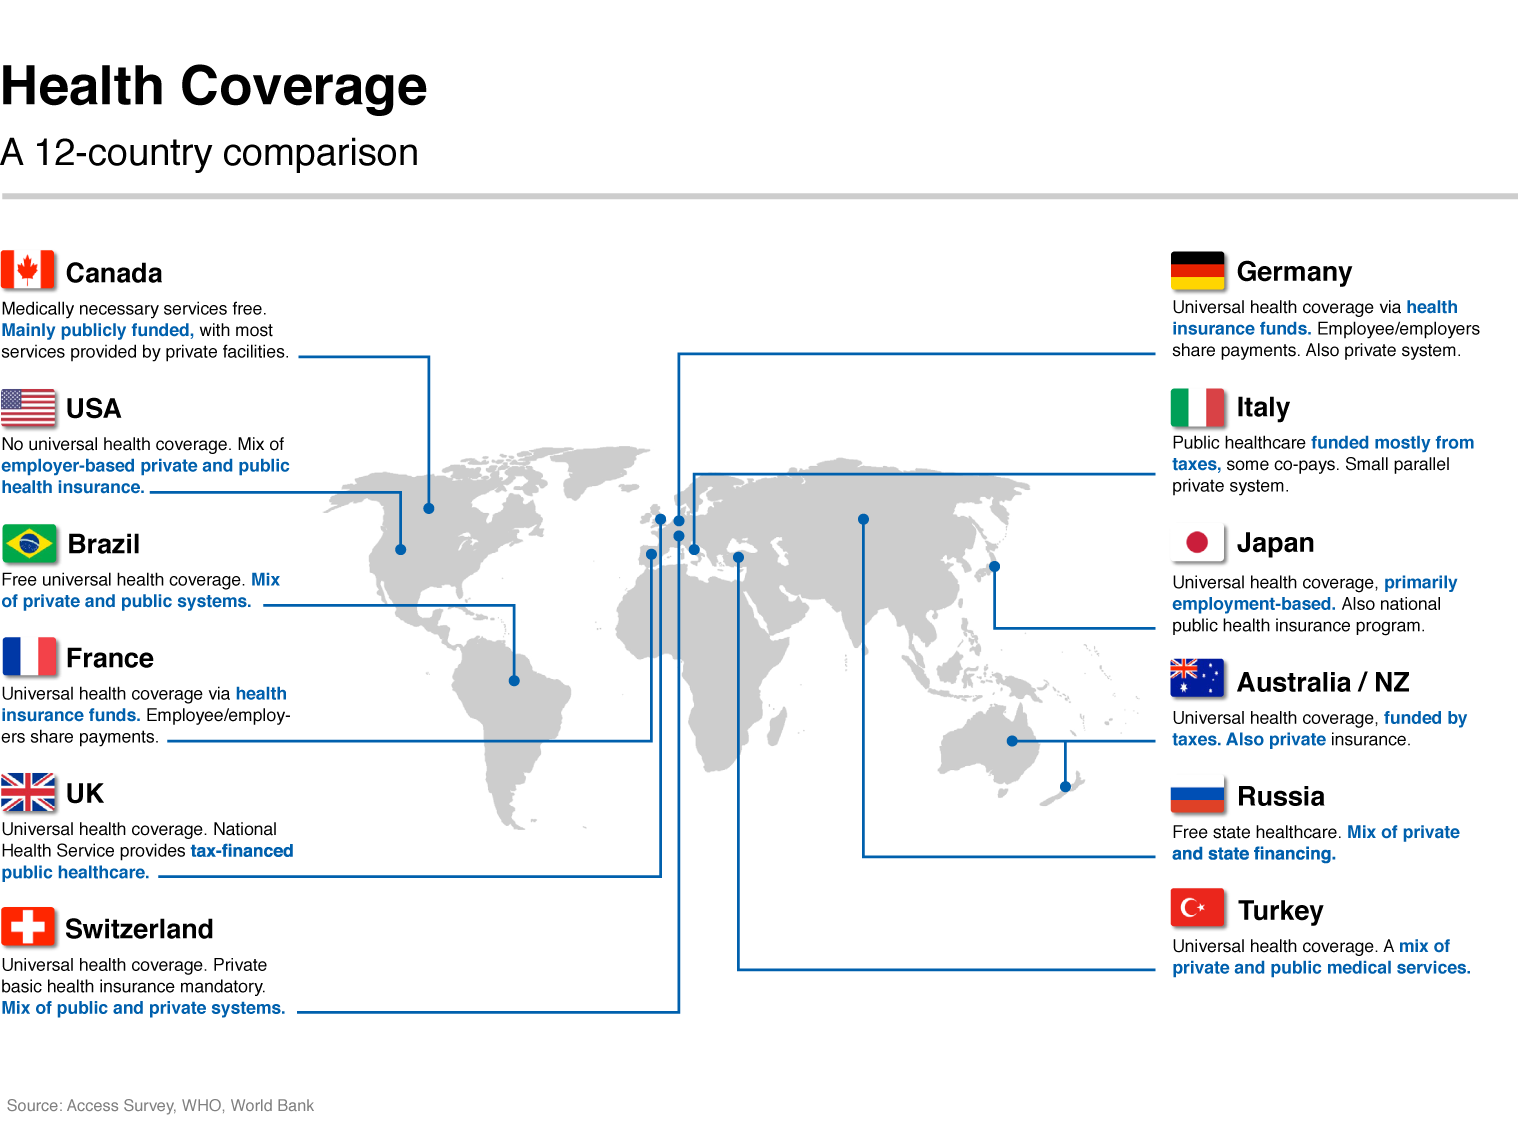 Health Coverage: a 12-country comparison